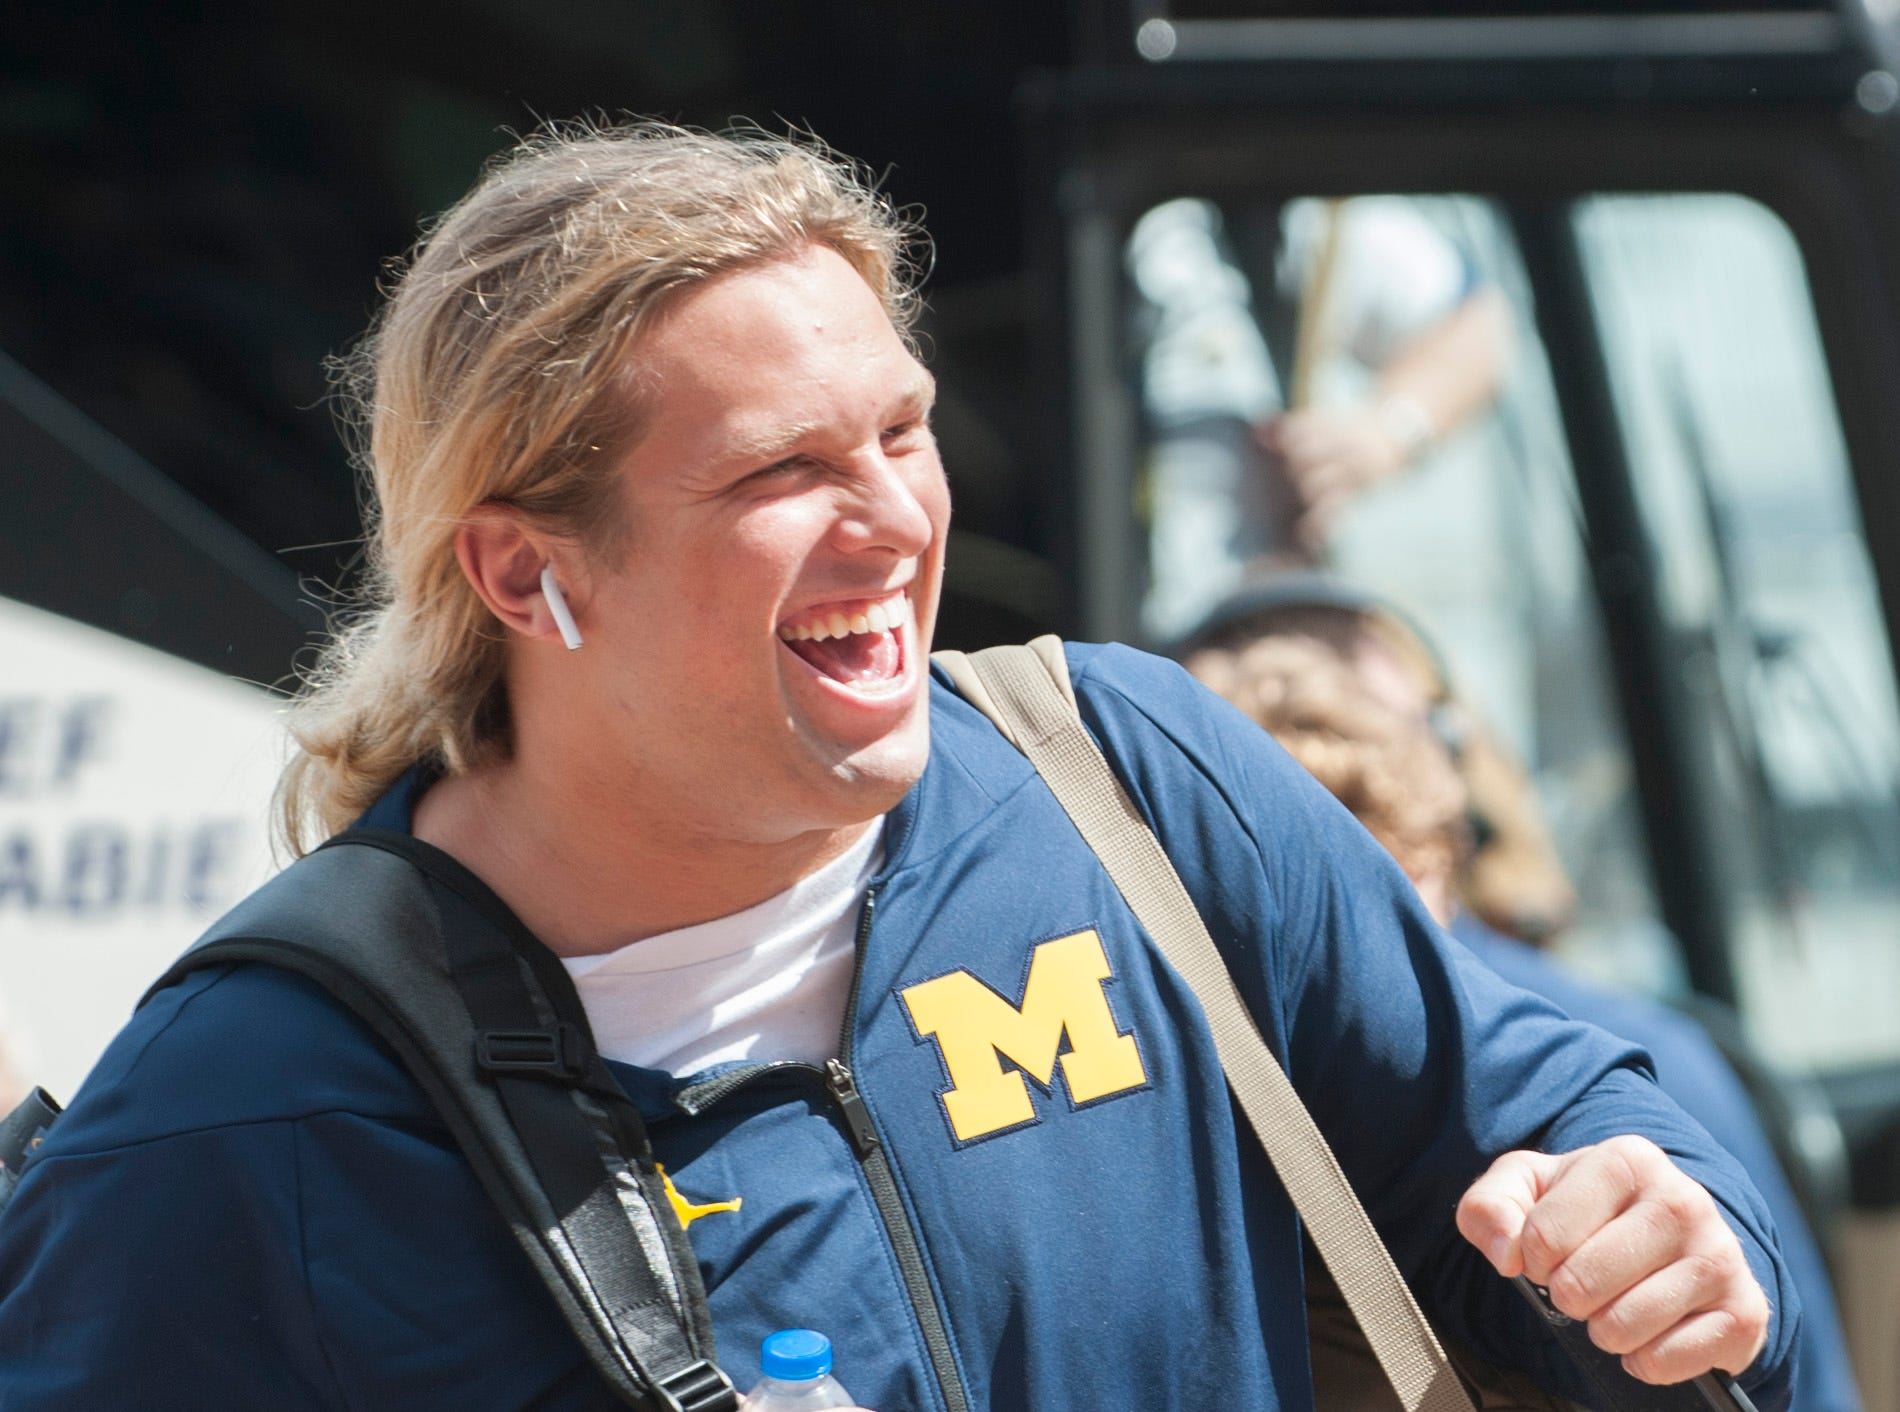 Michigan defensive lineman Chase Winovich arrives at Michigan Stadium in a jovial mood before the Wolverines's game against Southern Methodist University (SMU) in Ann Arbor on Saturday, September 15, 2018.